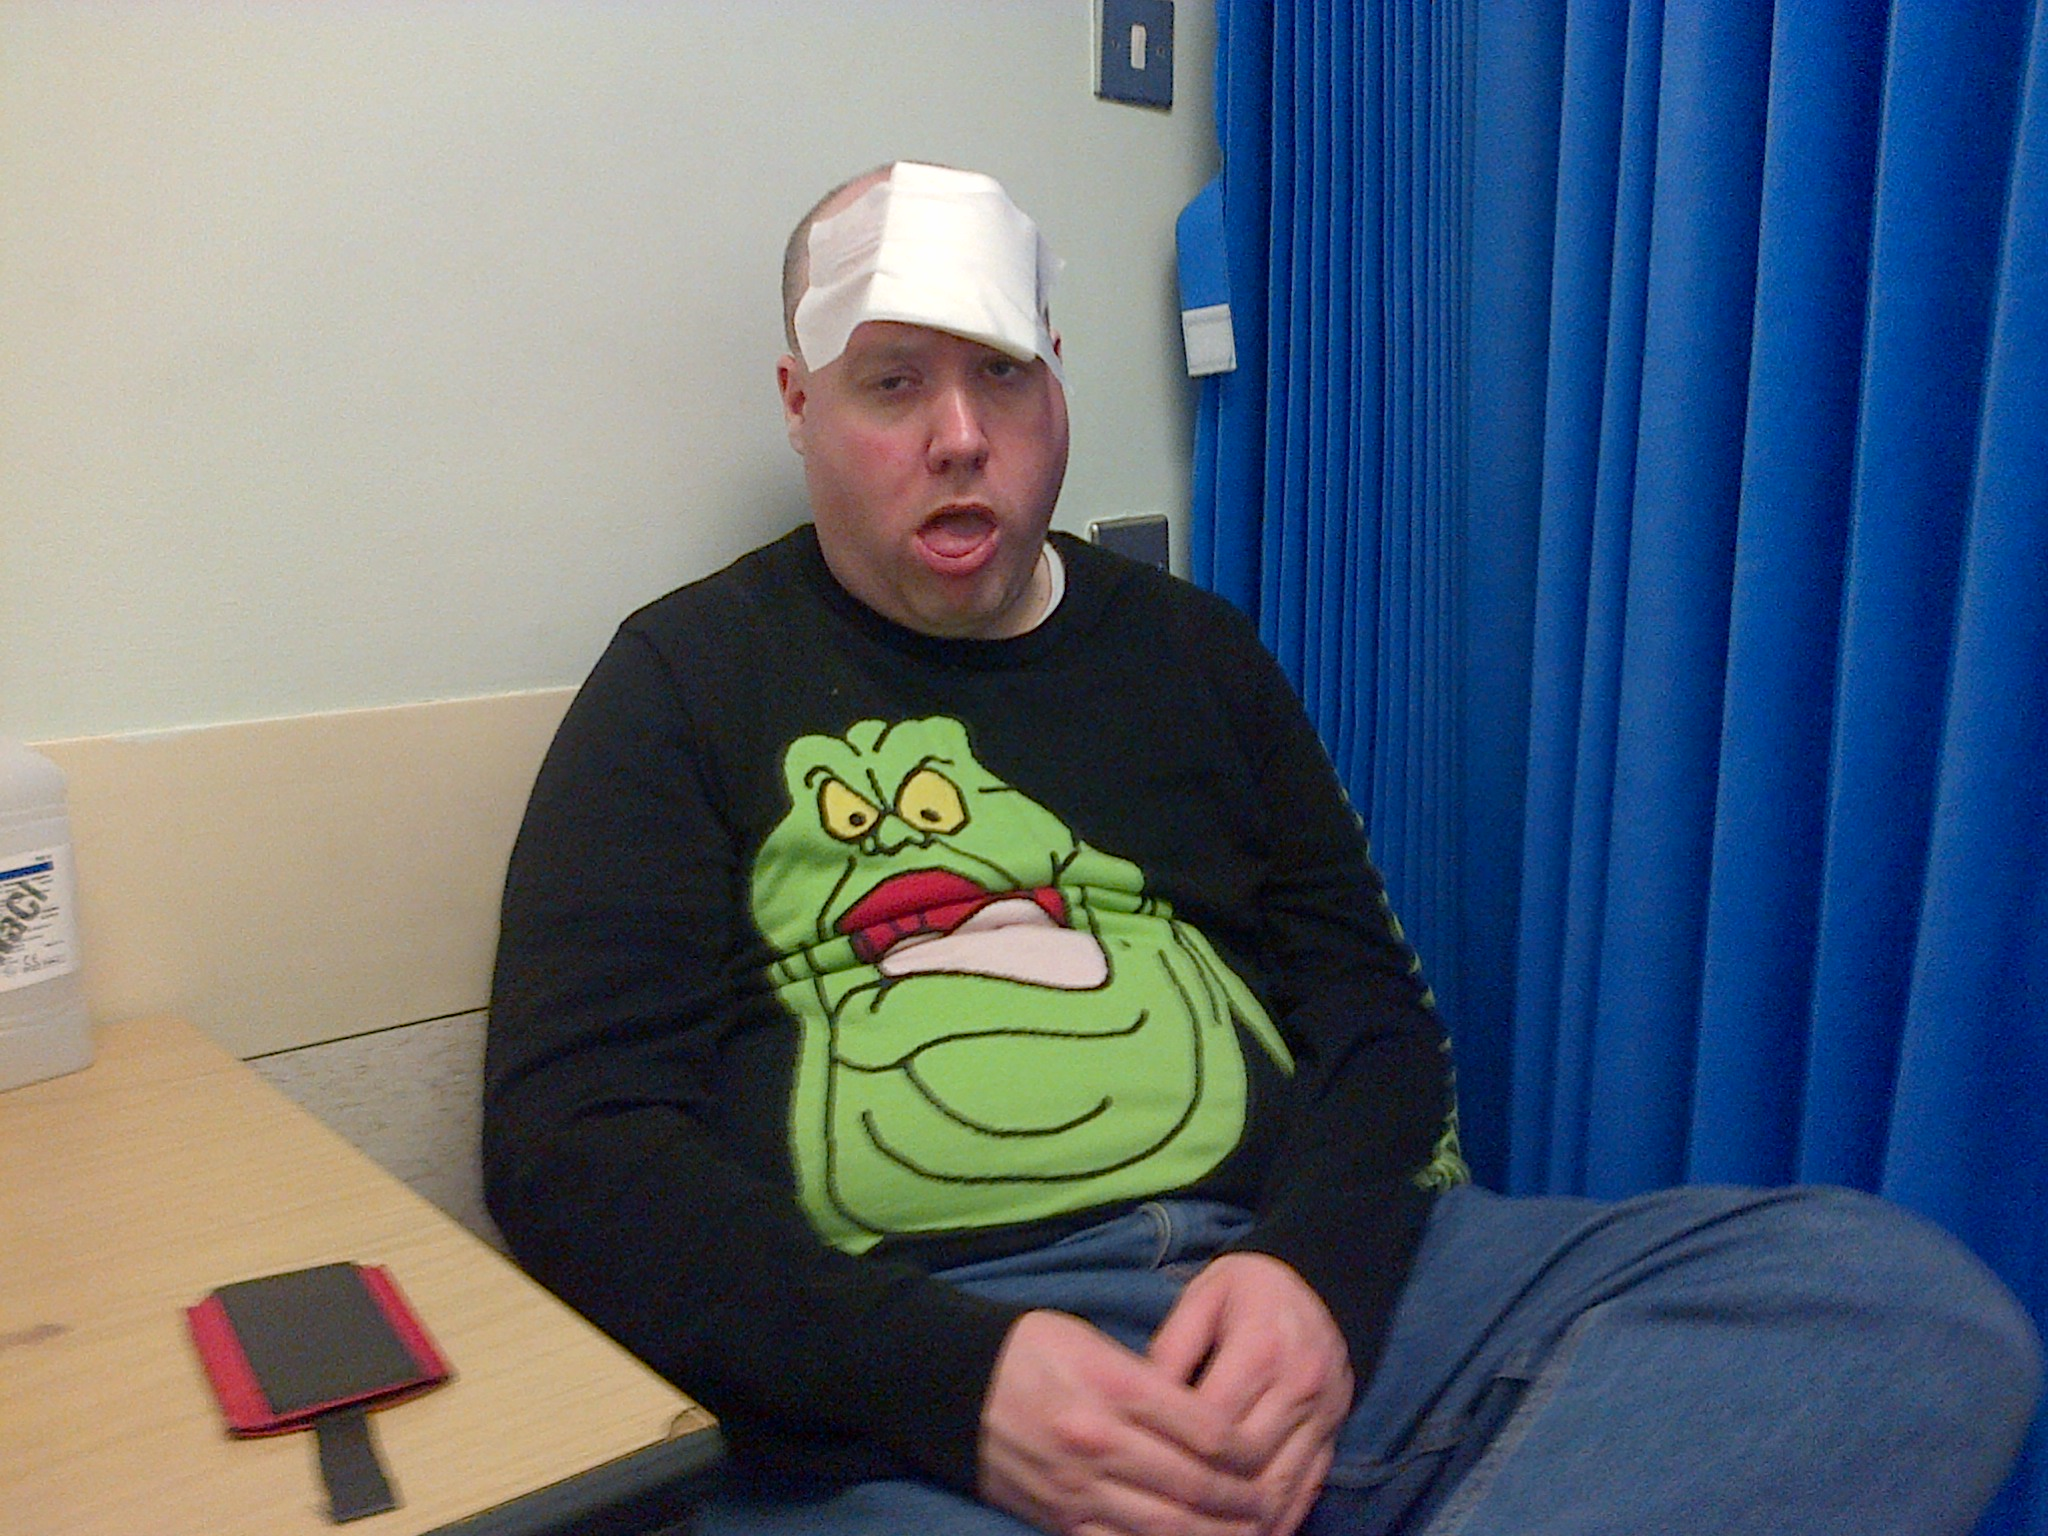 Me doing my Slimer impression in A&E